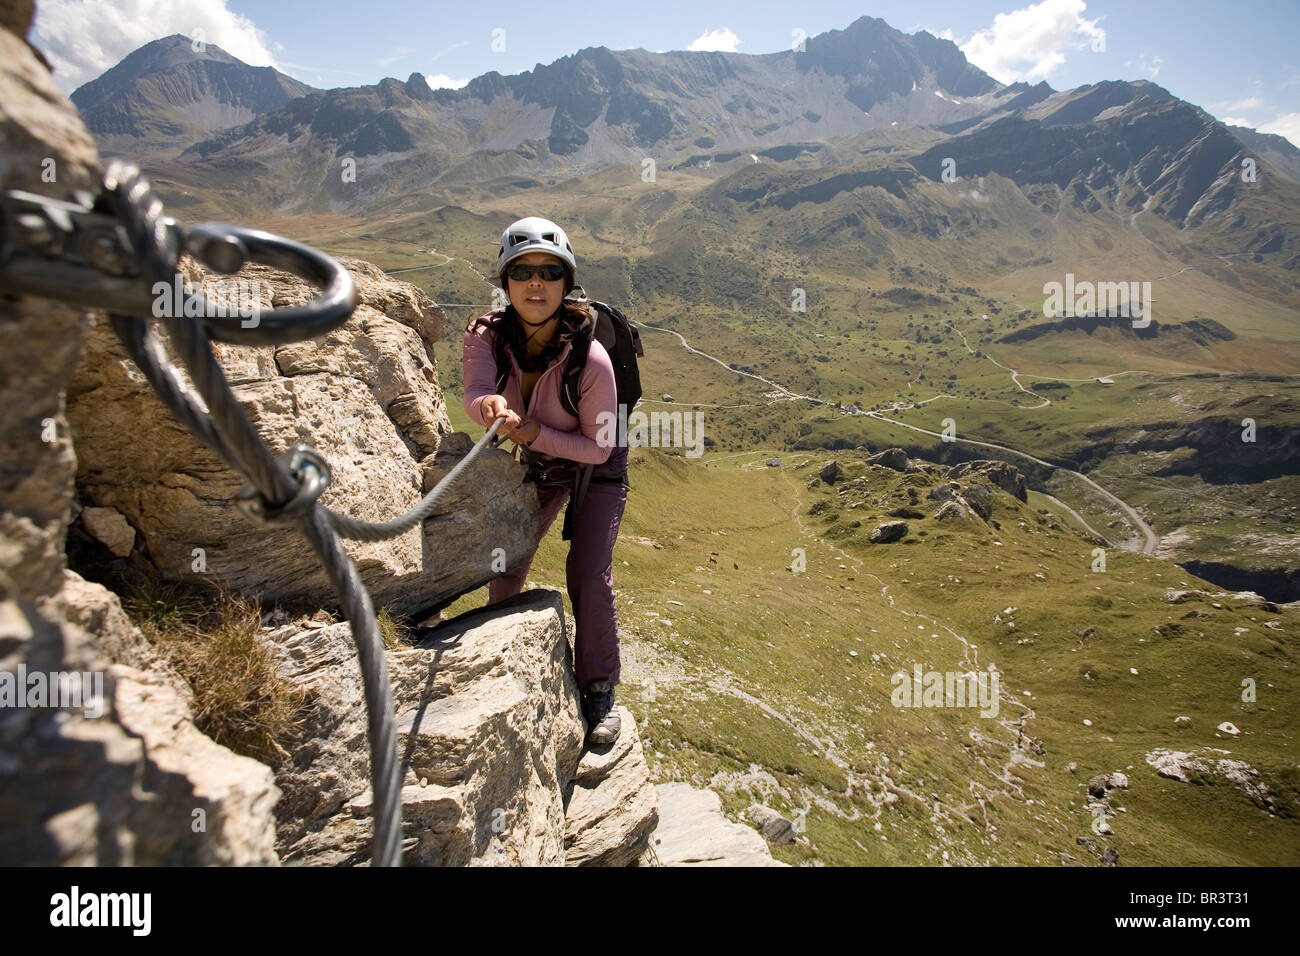 A young woman uses the cable bolted to the rock for climbing support while engaging in the sport of Via Ferrata - Stock Image